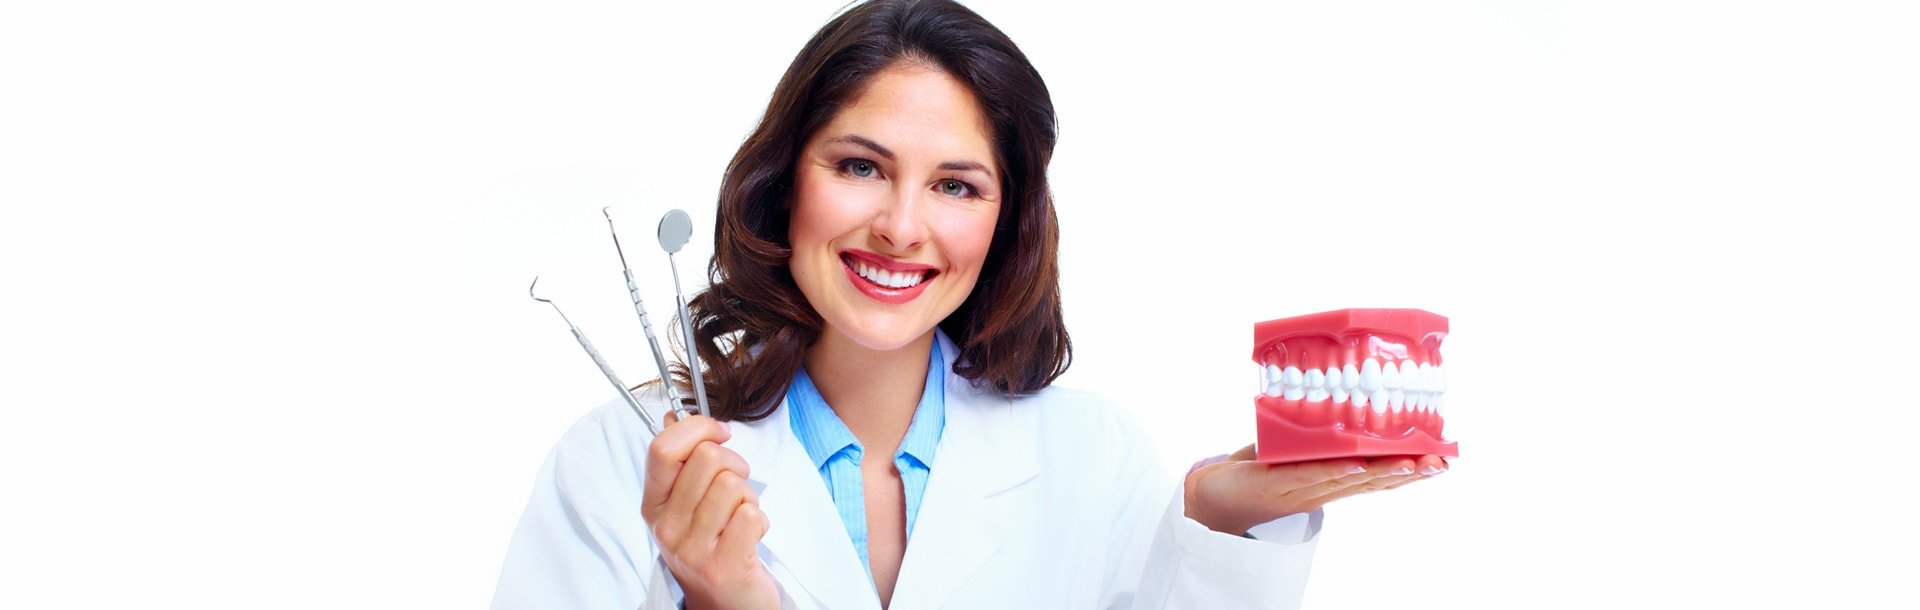 A Smile Investment with Cosmetic Dentistry Dentures